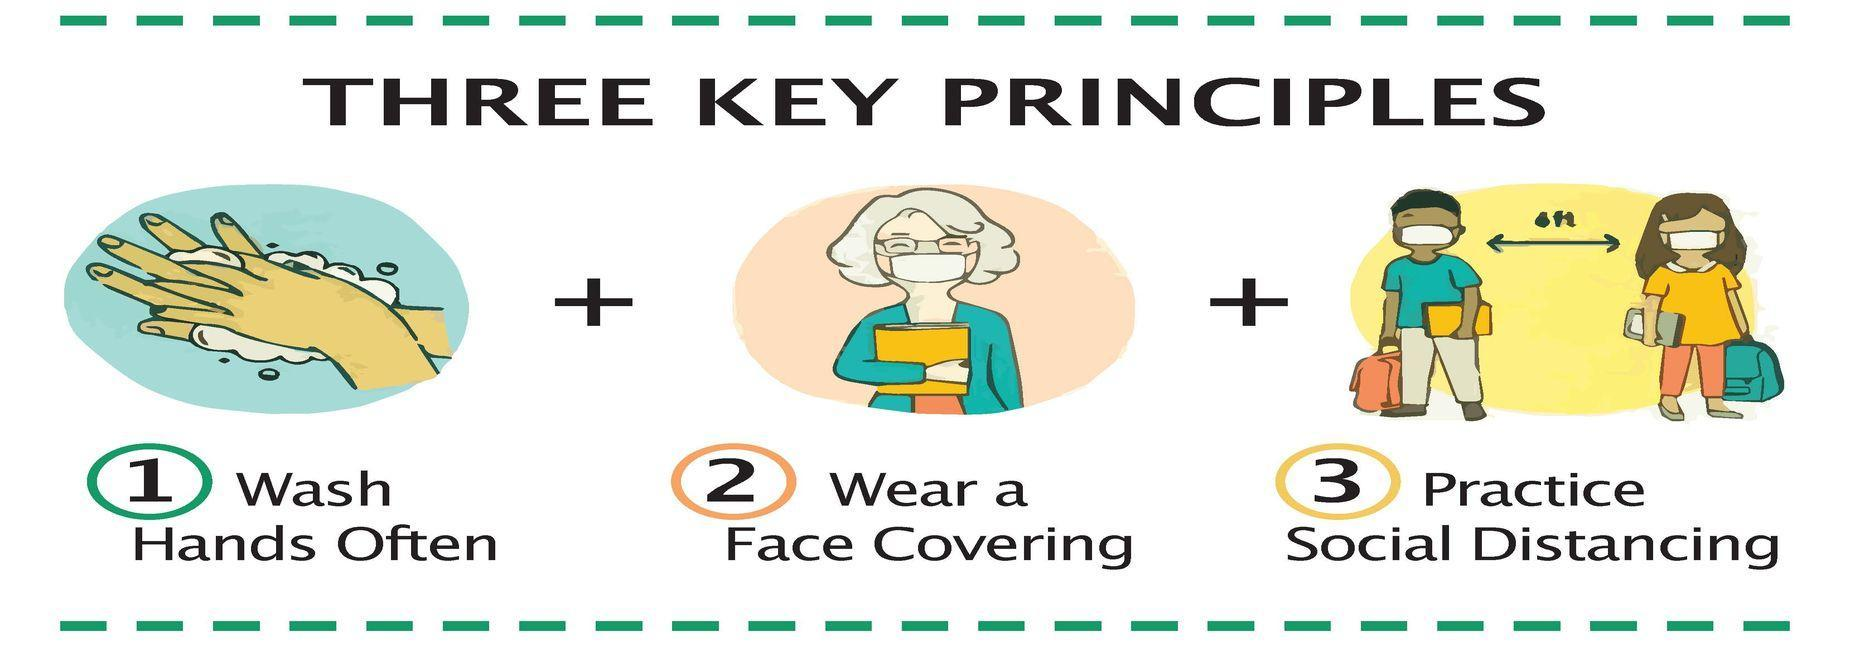 A graphic with the 3 principles or steps for when a student in school tests positive for Covid-19